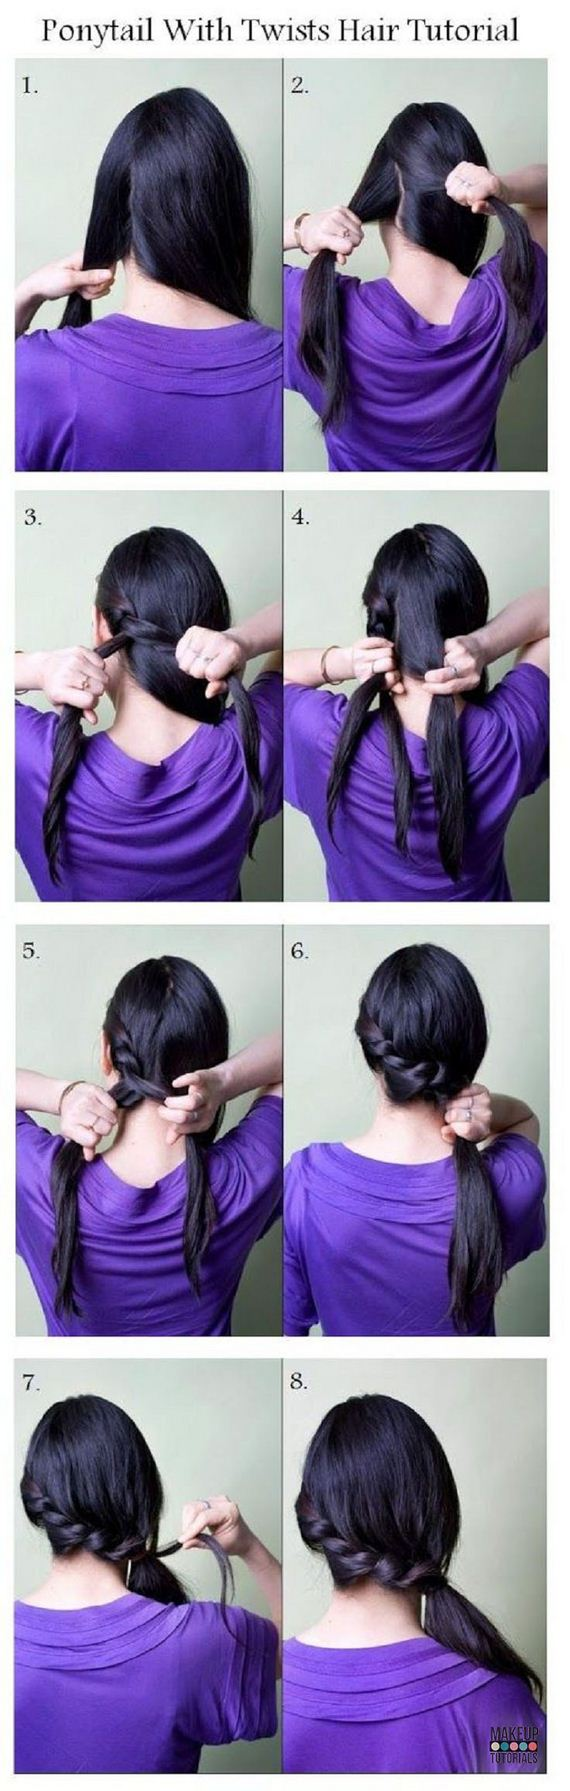 06-Easy-Hairstyles